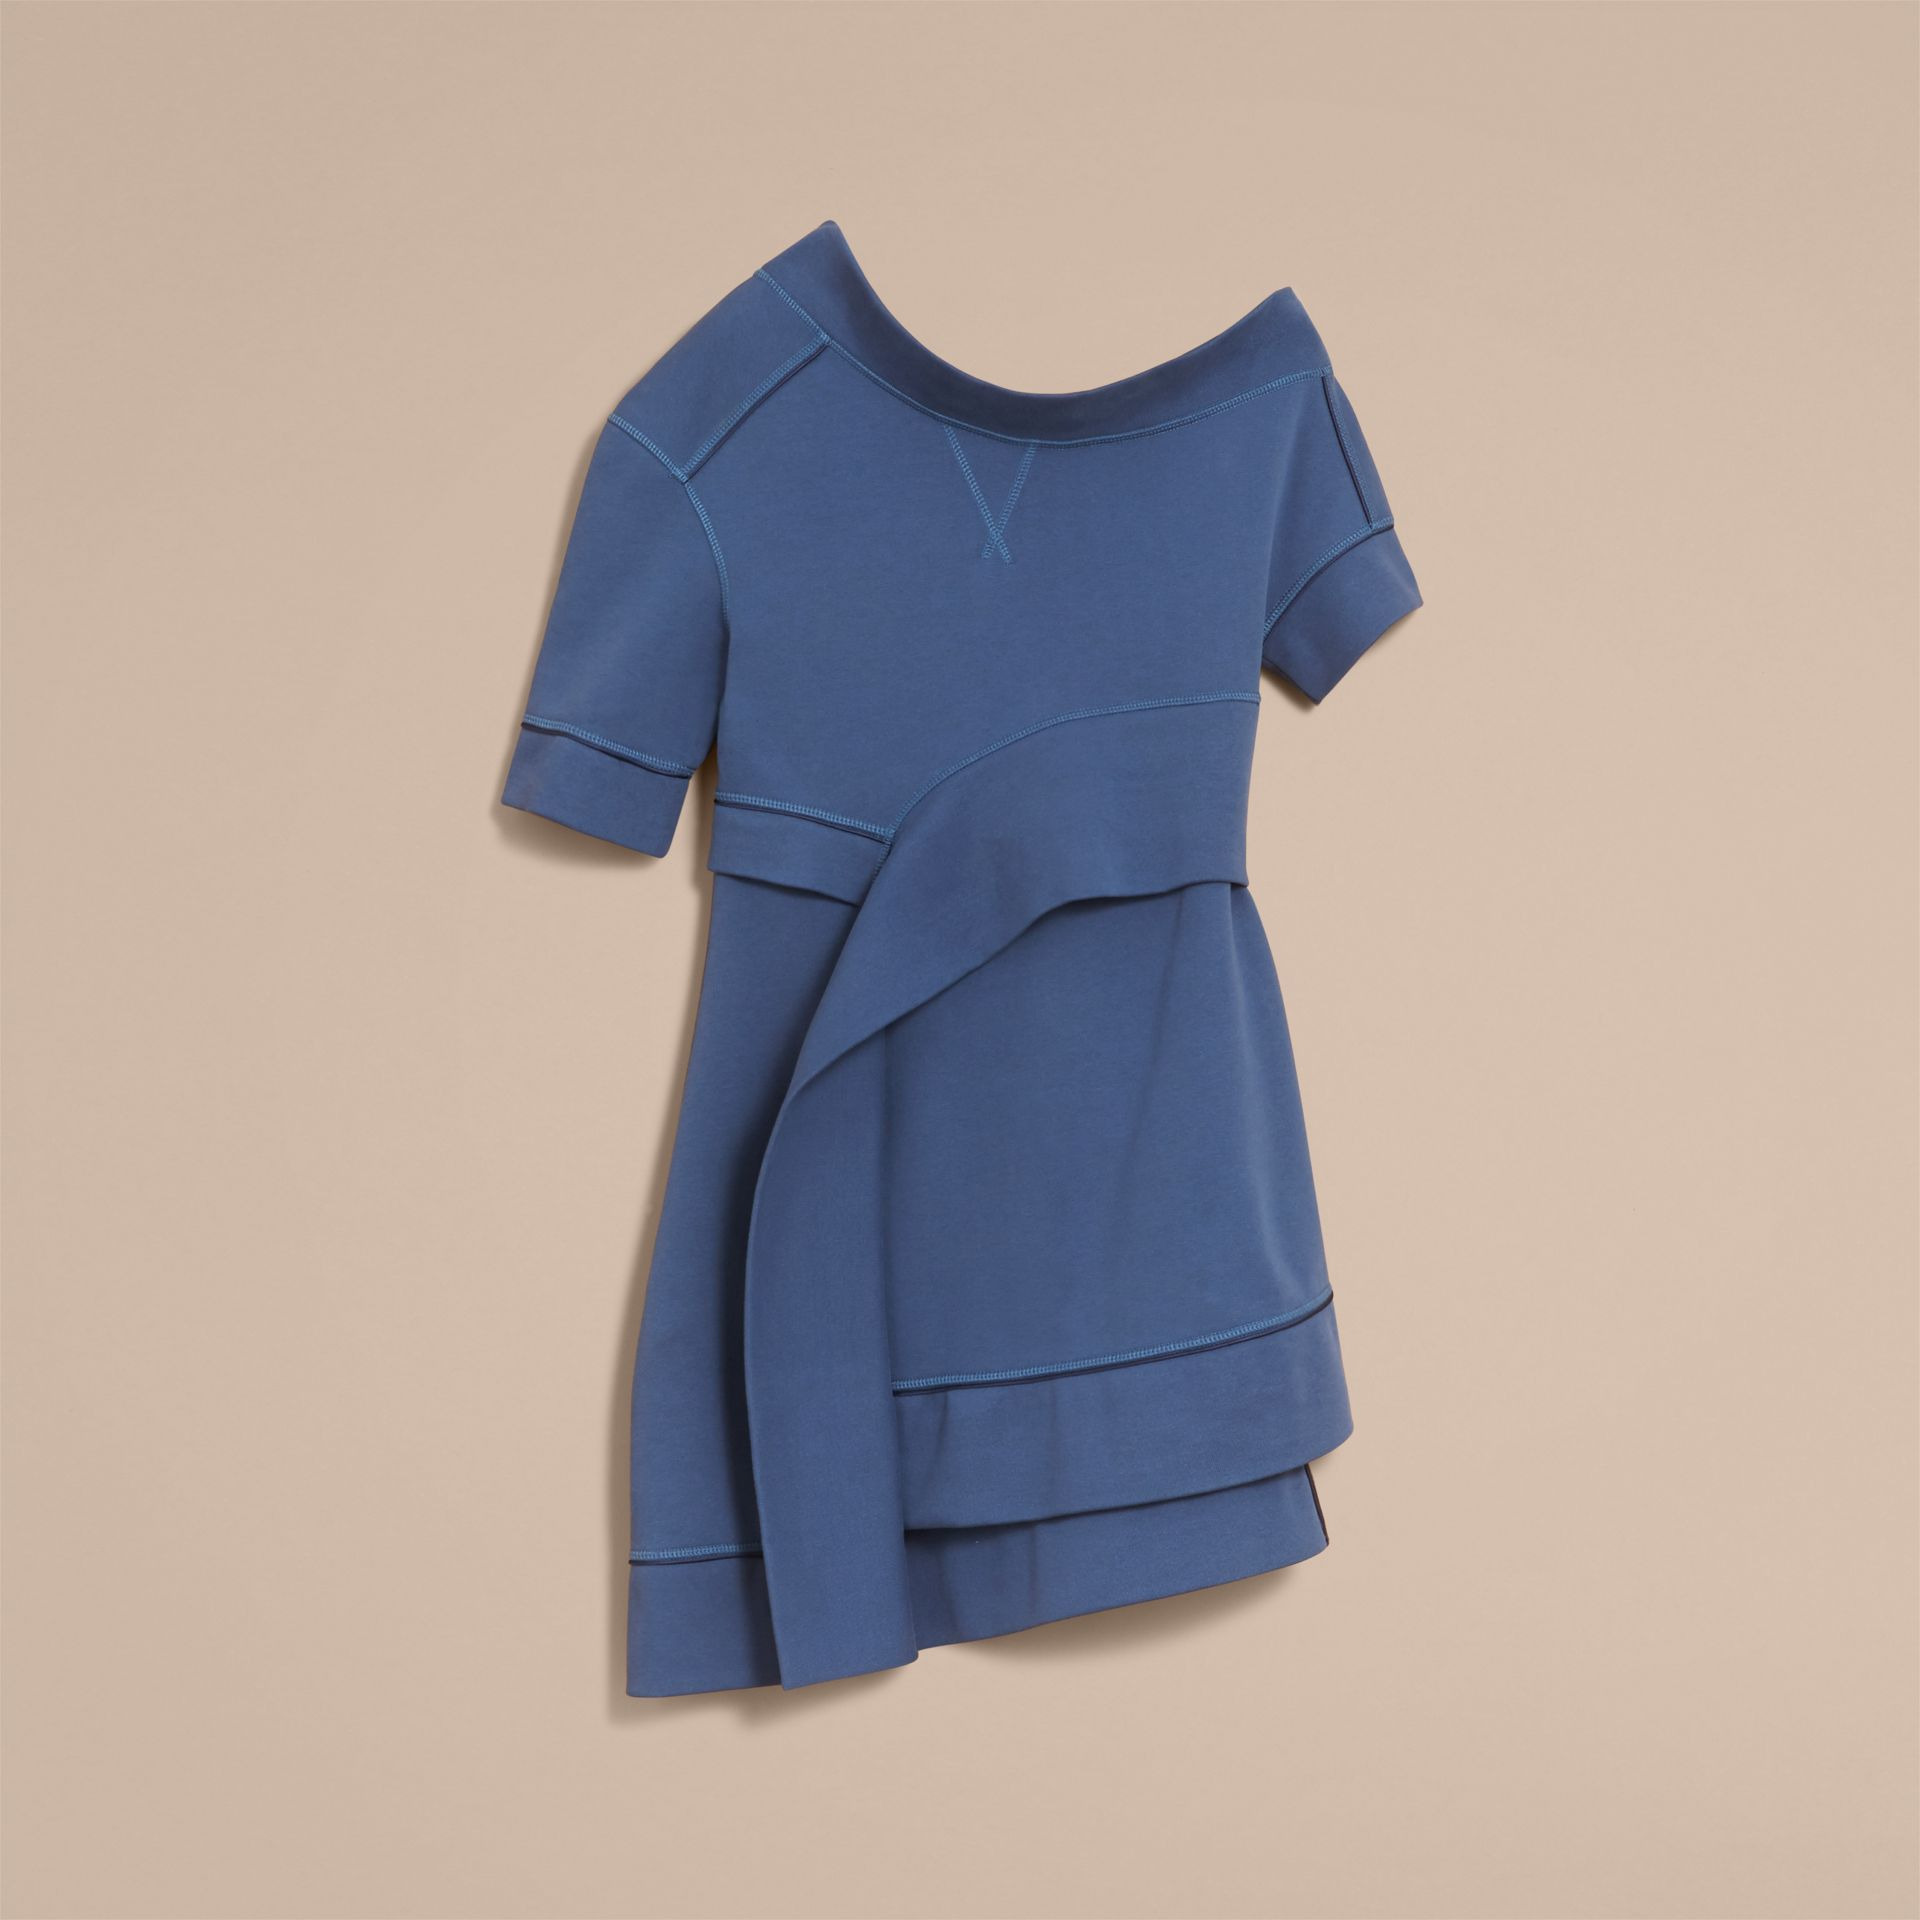 One-shoulder Sweatshirt Dress in Pewter Blue - Women | Burberry - gallery image 4